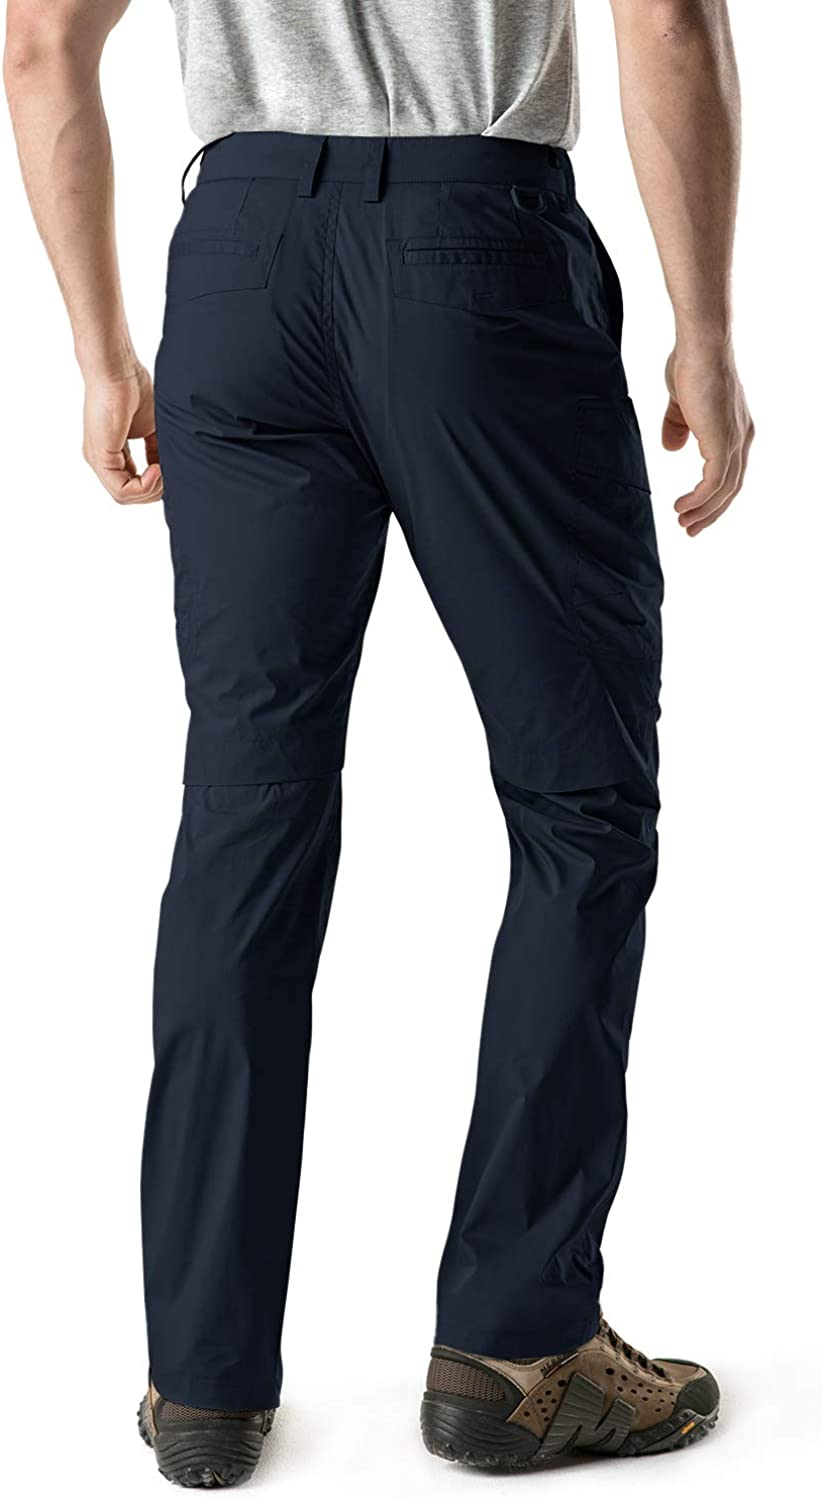 CQR Mens Outdoor Adventure Rugged Pants Hiking Camping Stretch Durable UPF 50 Quick Dry Cargo Trousers